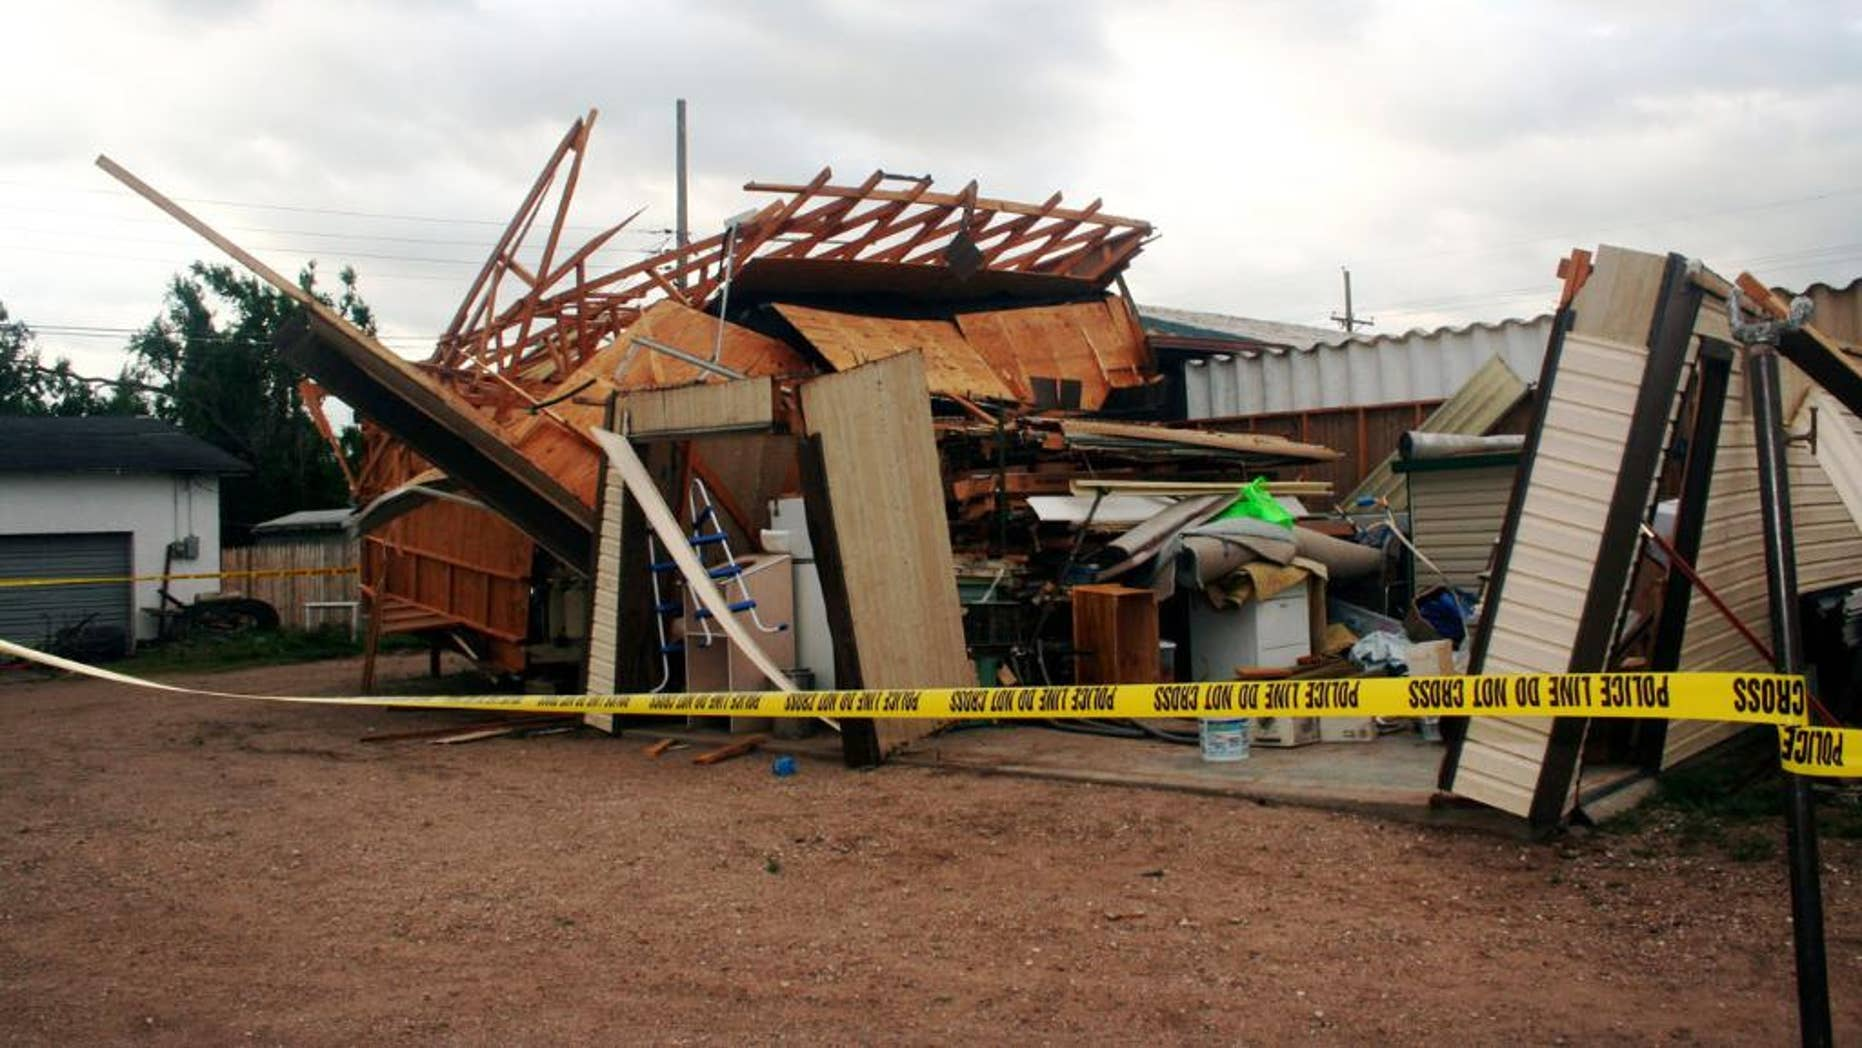 """FILE - In this May 31, 2007, file photo, a structure is destroyed after a tornado briefly touched down in Guymon, Okla. The National Weather Service in Norman has used Twitter and Facebook for years to disseminate weather warnings. But they tried a new approach recently, holding an online """"tornado drill."""" (AP Photo/Guymon Daily Herald, Heather Avey, File)"""